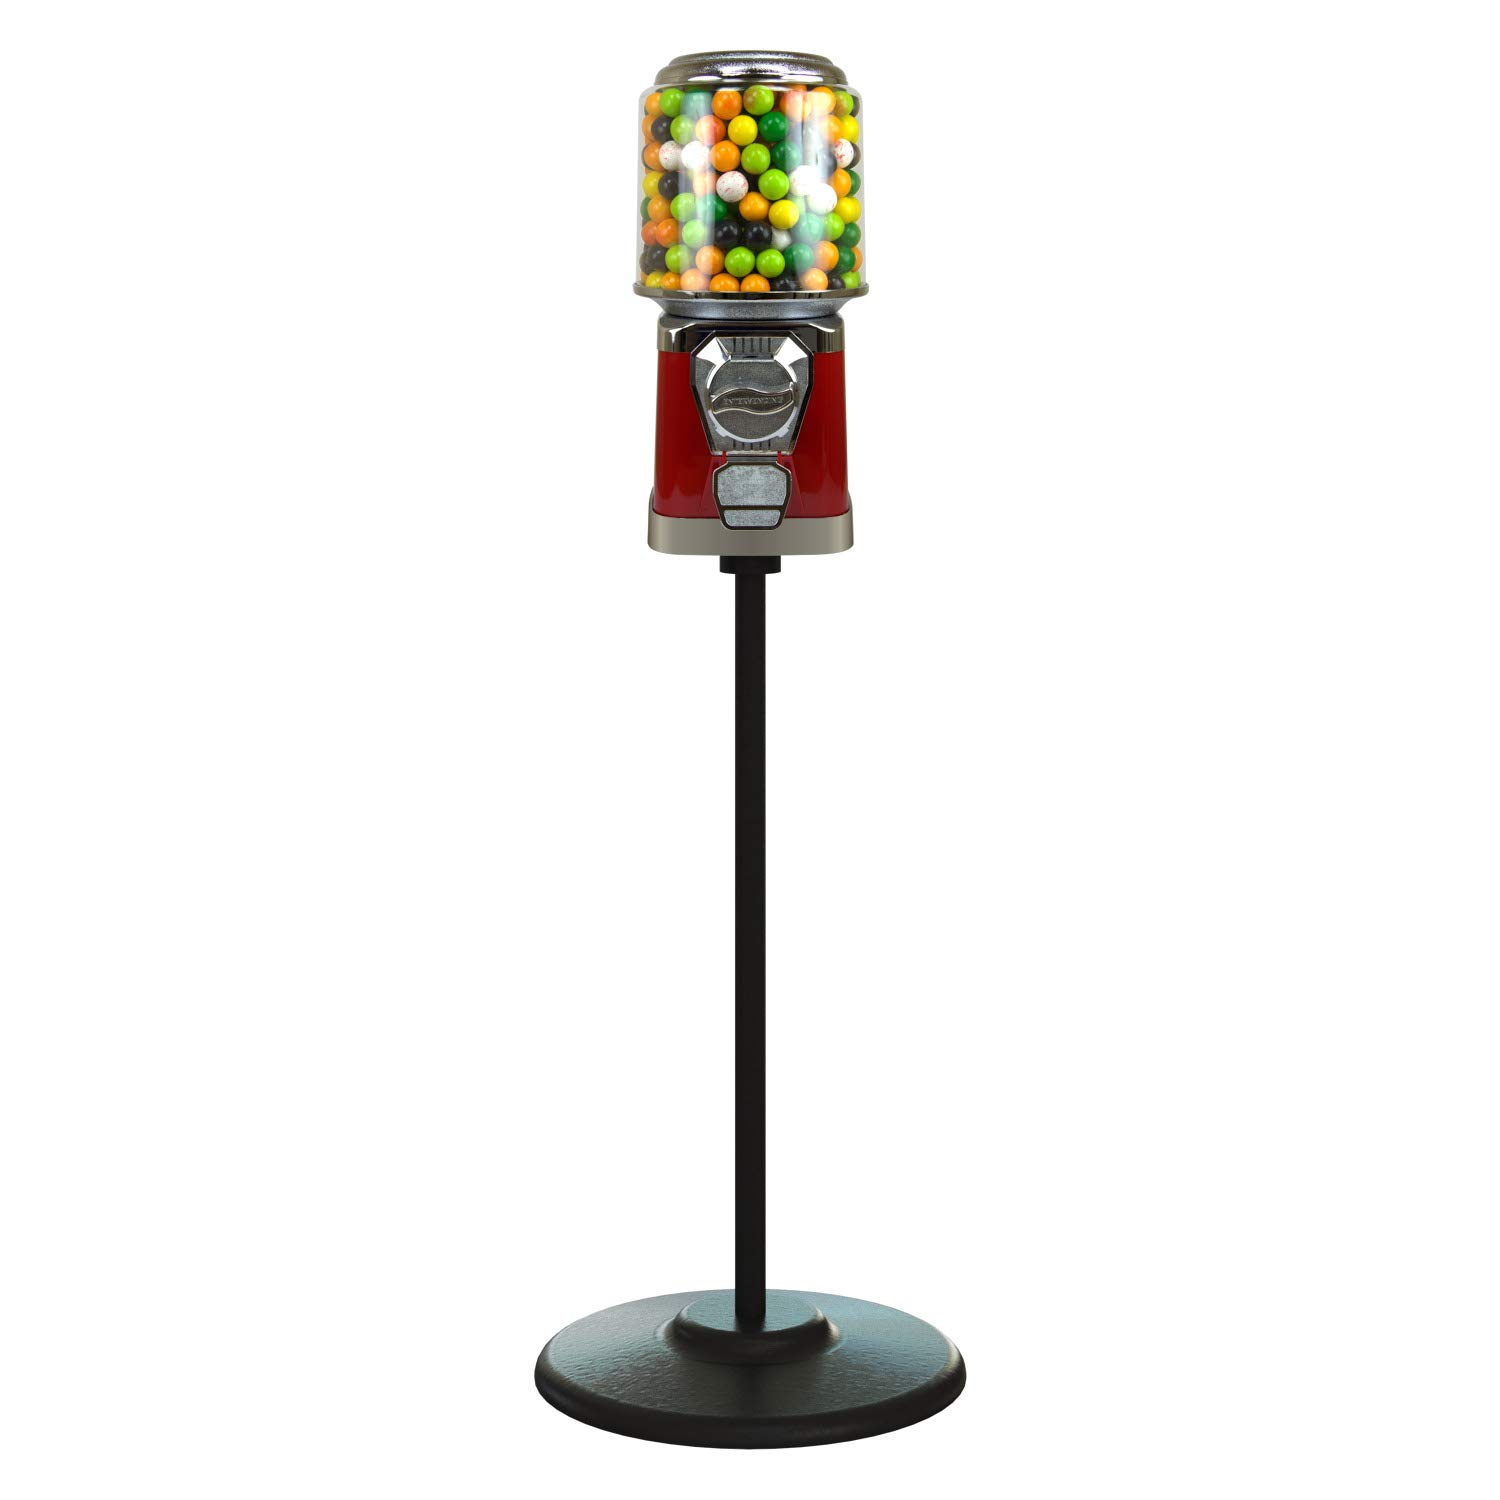 Gumball Machine with Stand - Red Home Vending Machine Bundled with 5 Lb Gumballs - Cylinder Bank Bubble Gum Machine for Kids - Commercial Gumball Capsule Bouncy Ball Machine